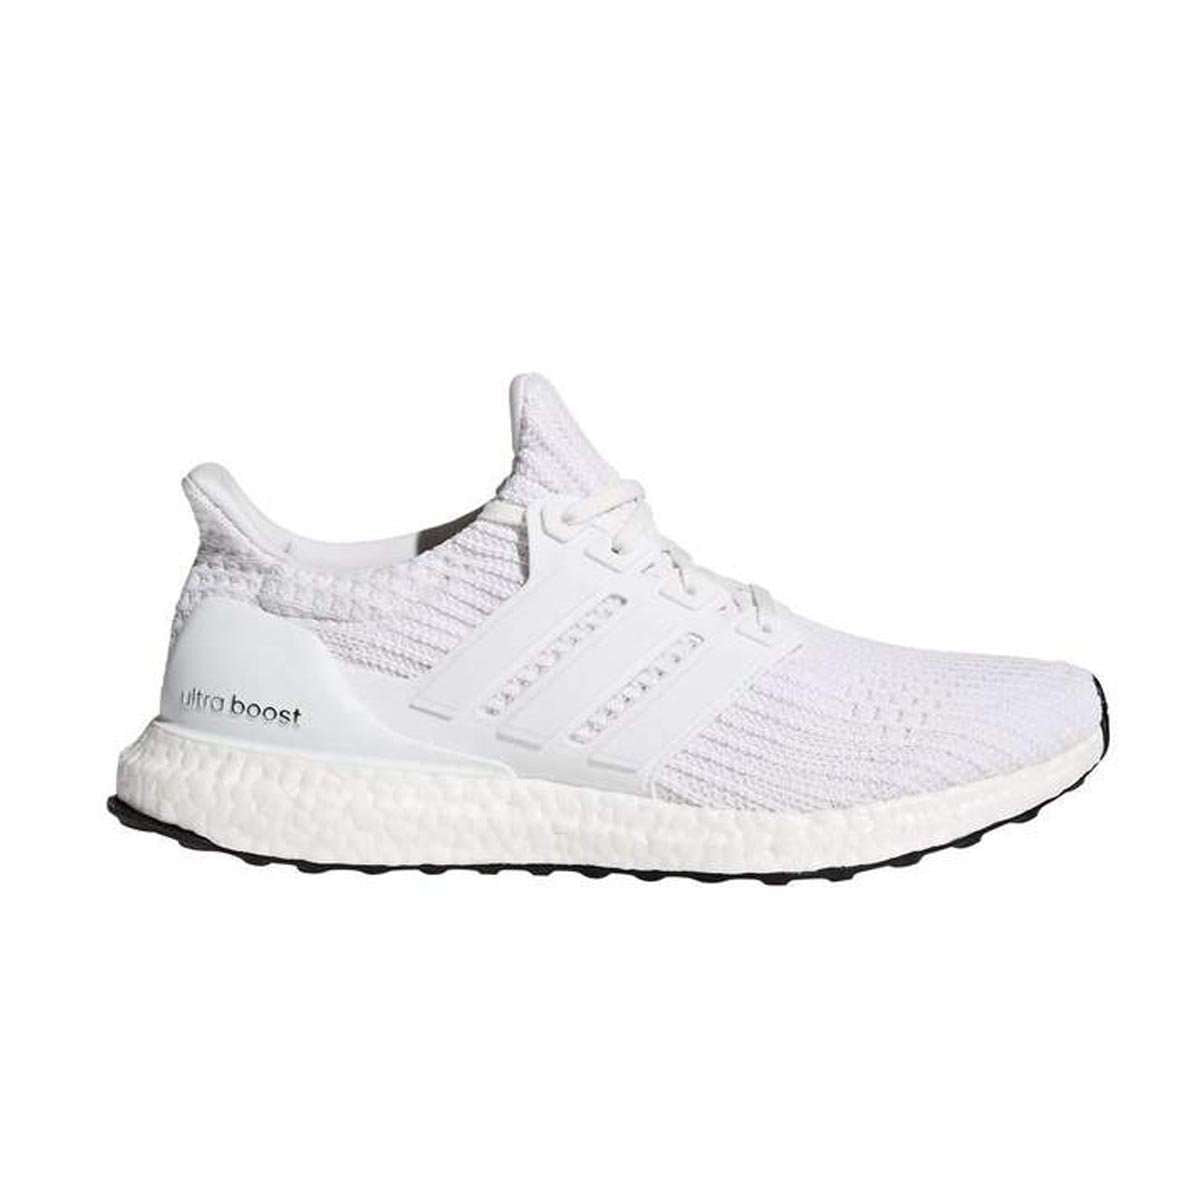 adidas Ultra Boost men's running shoes Hommes